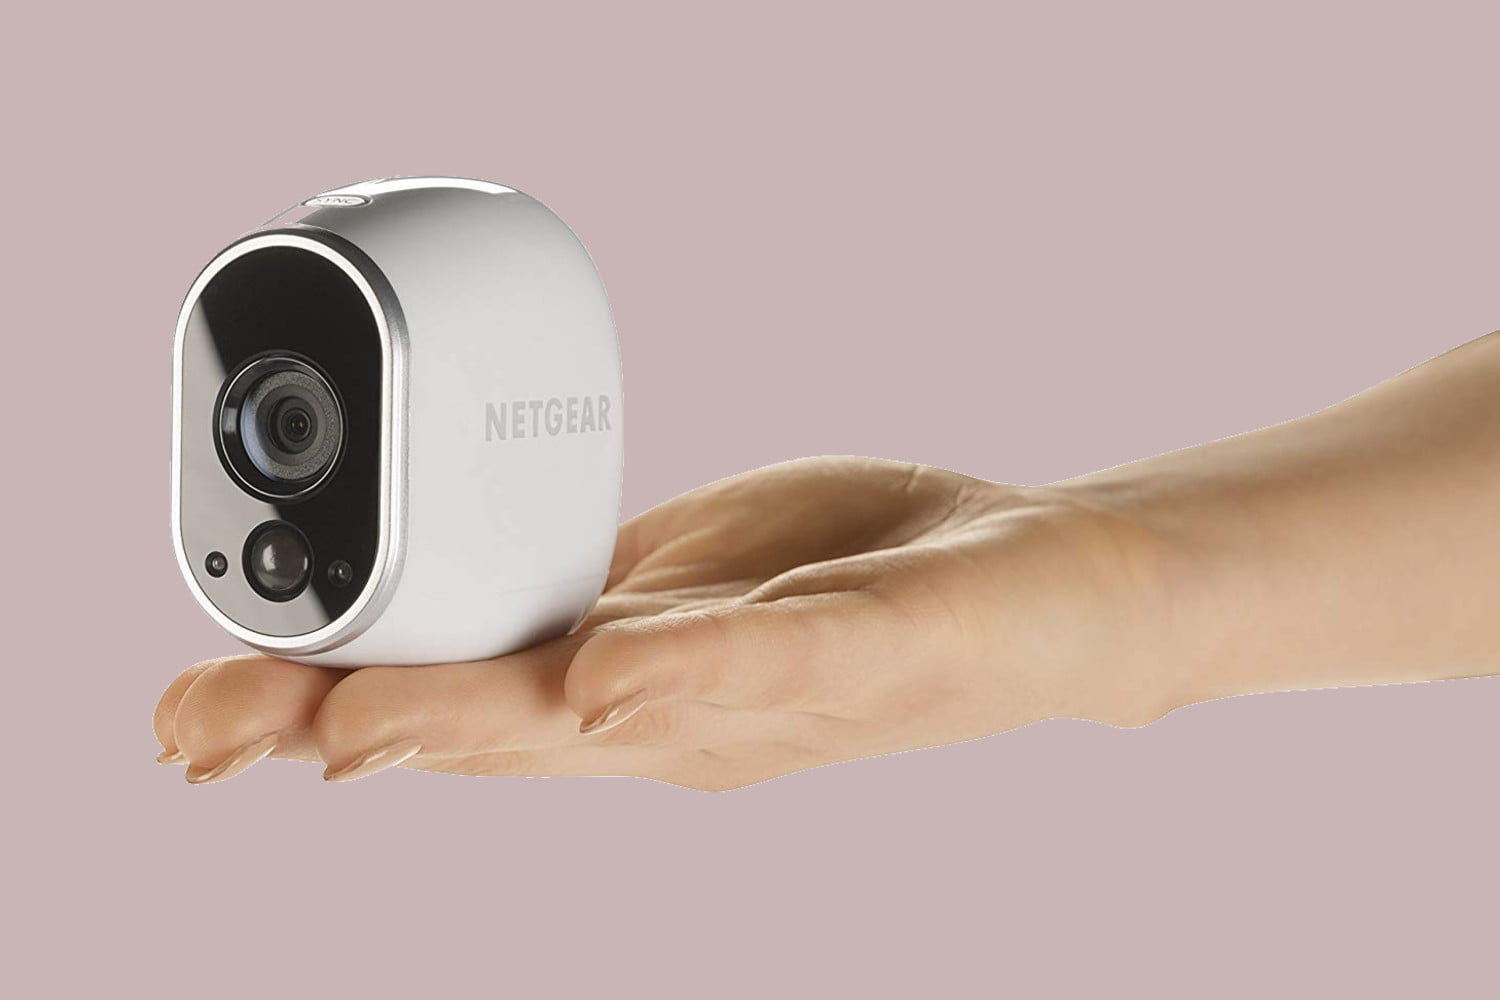 Amazon drops the price for Arlo HD indoor and outdoor security camera systems